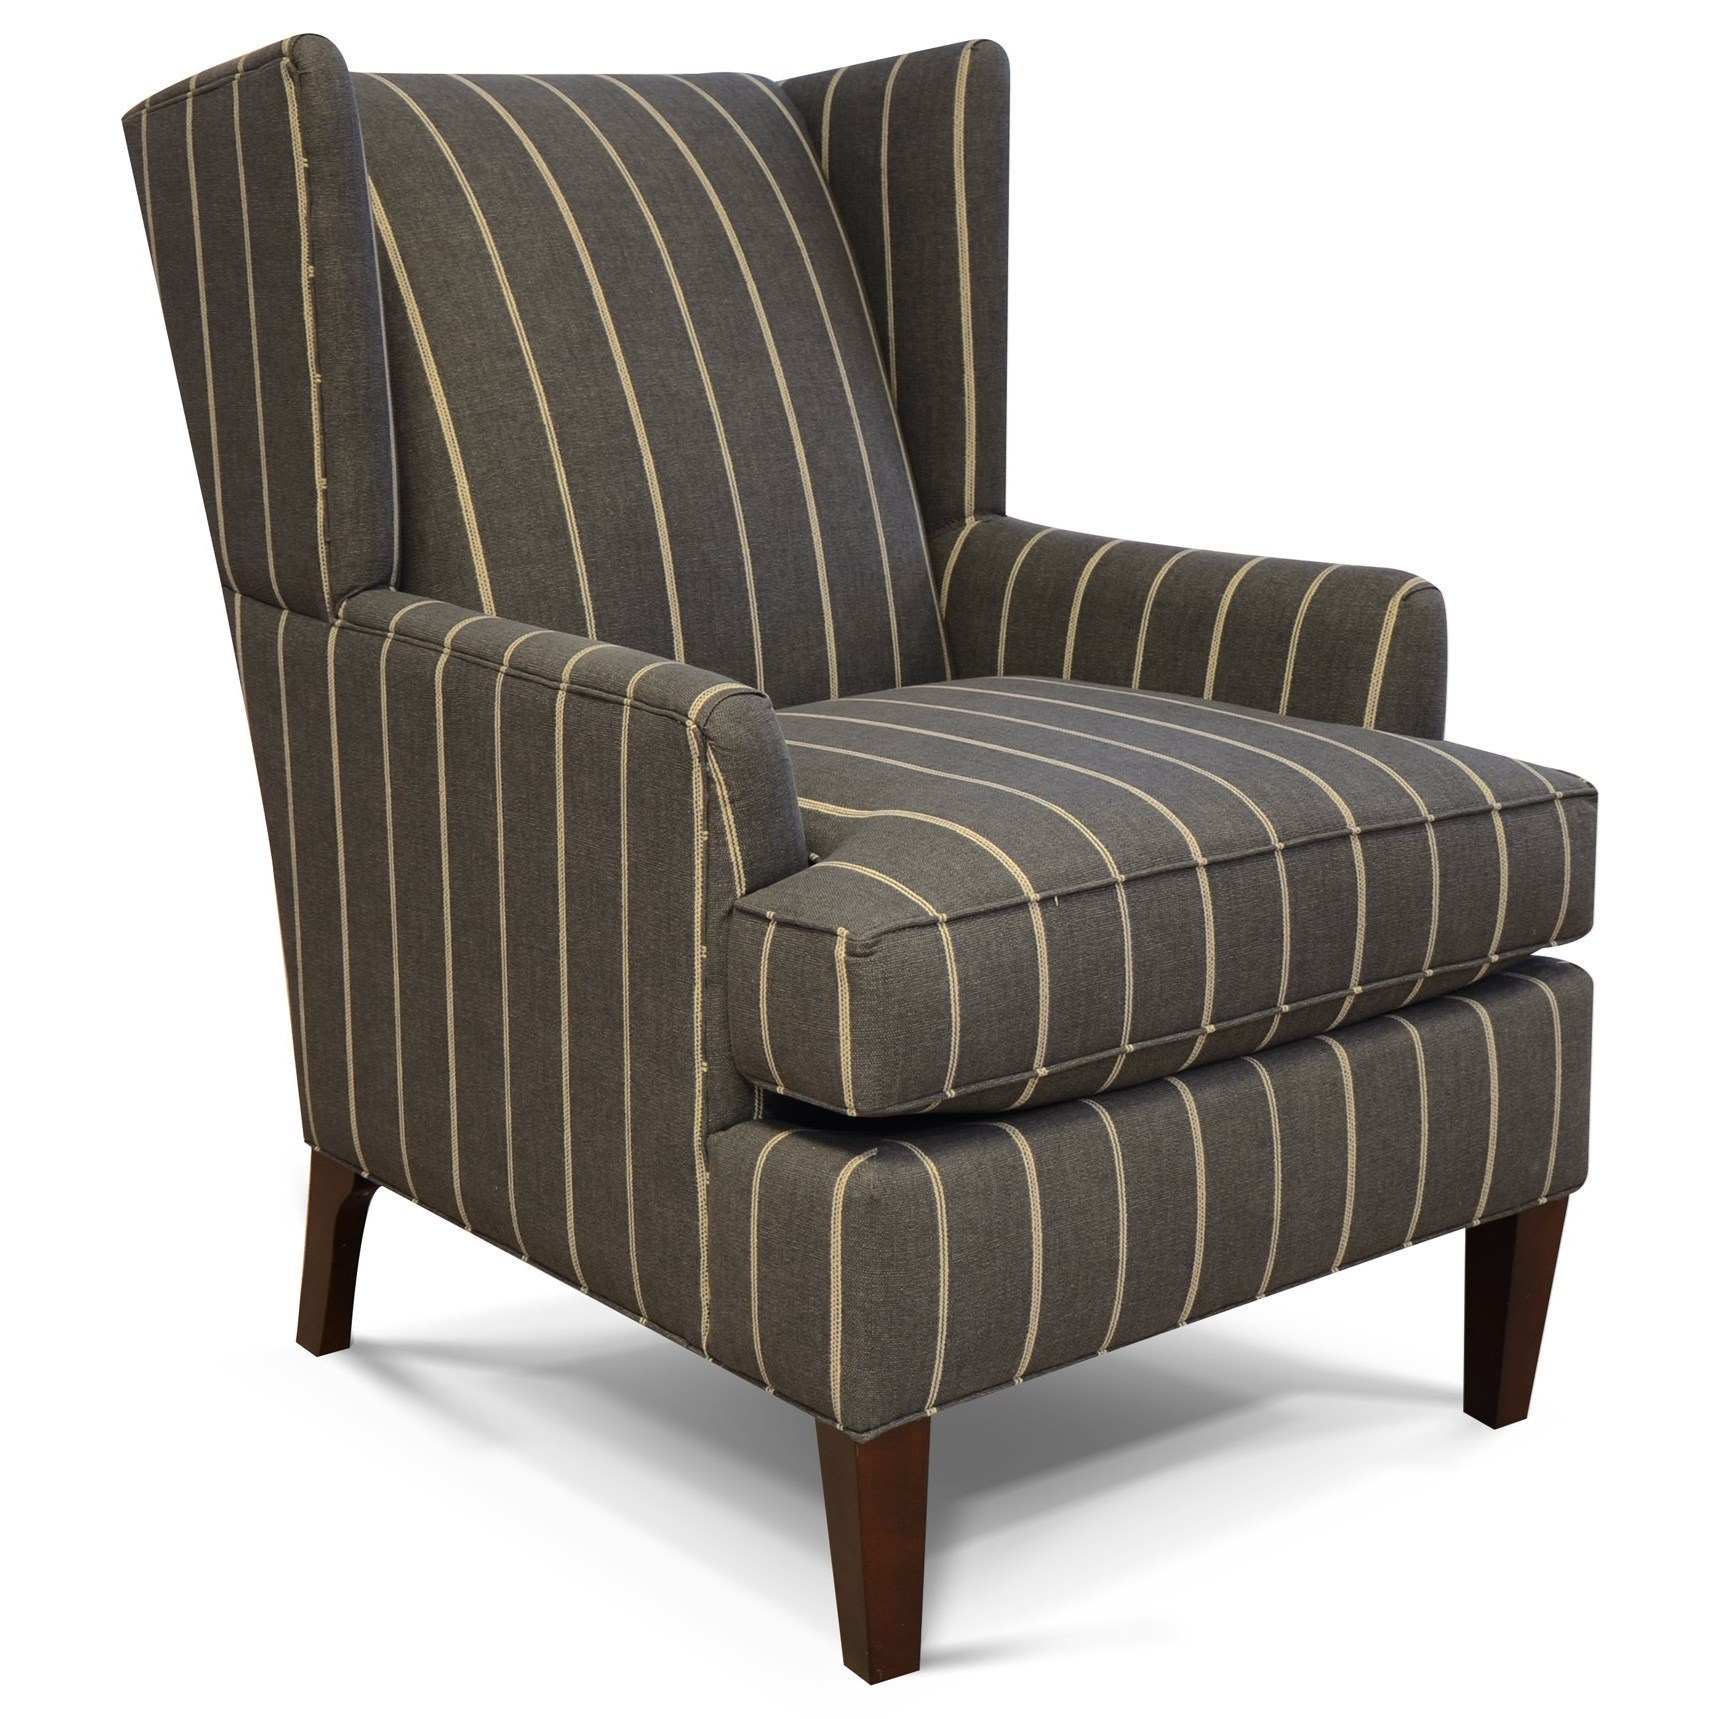 Shipley Wing Back Arm Chair By England